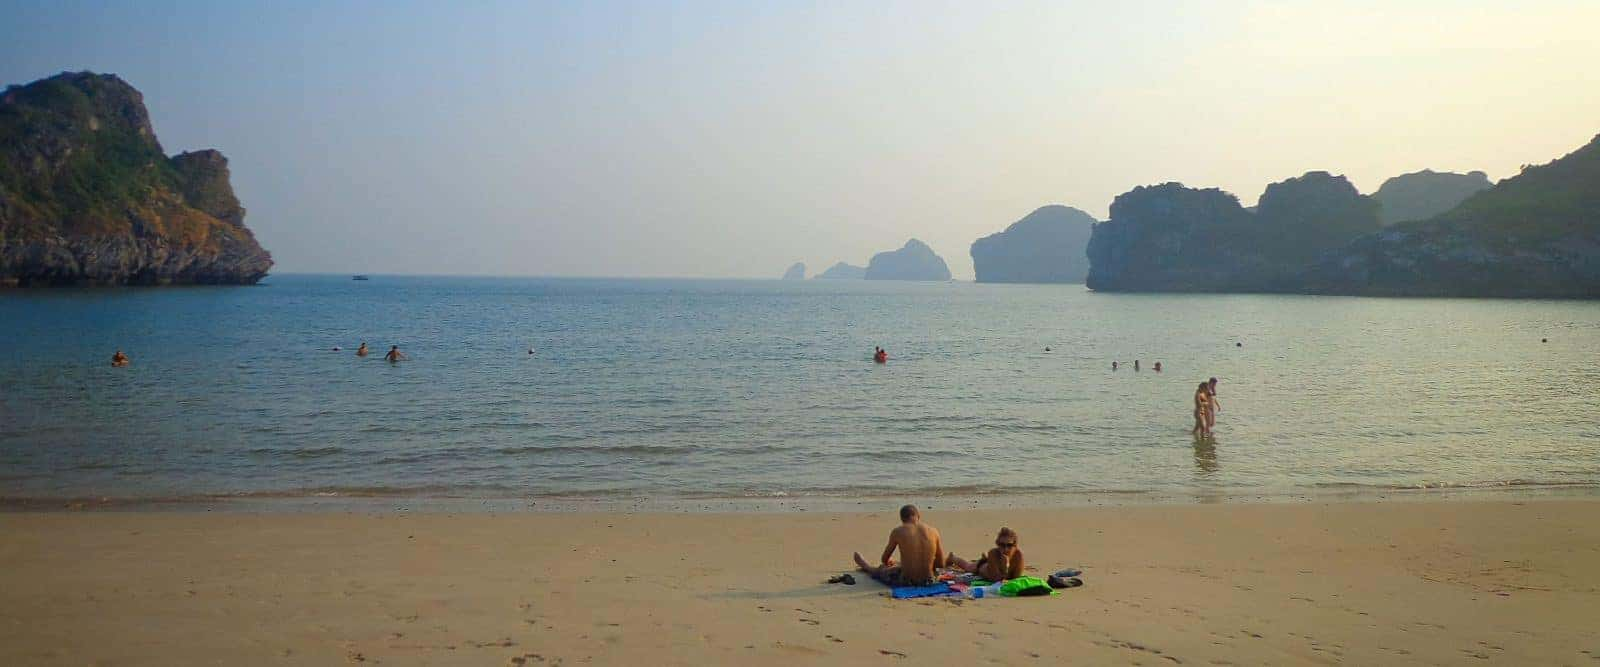 The uncrowded beaches of Cat Ba Island.